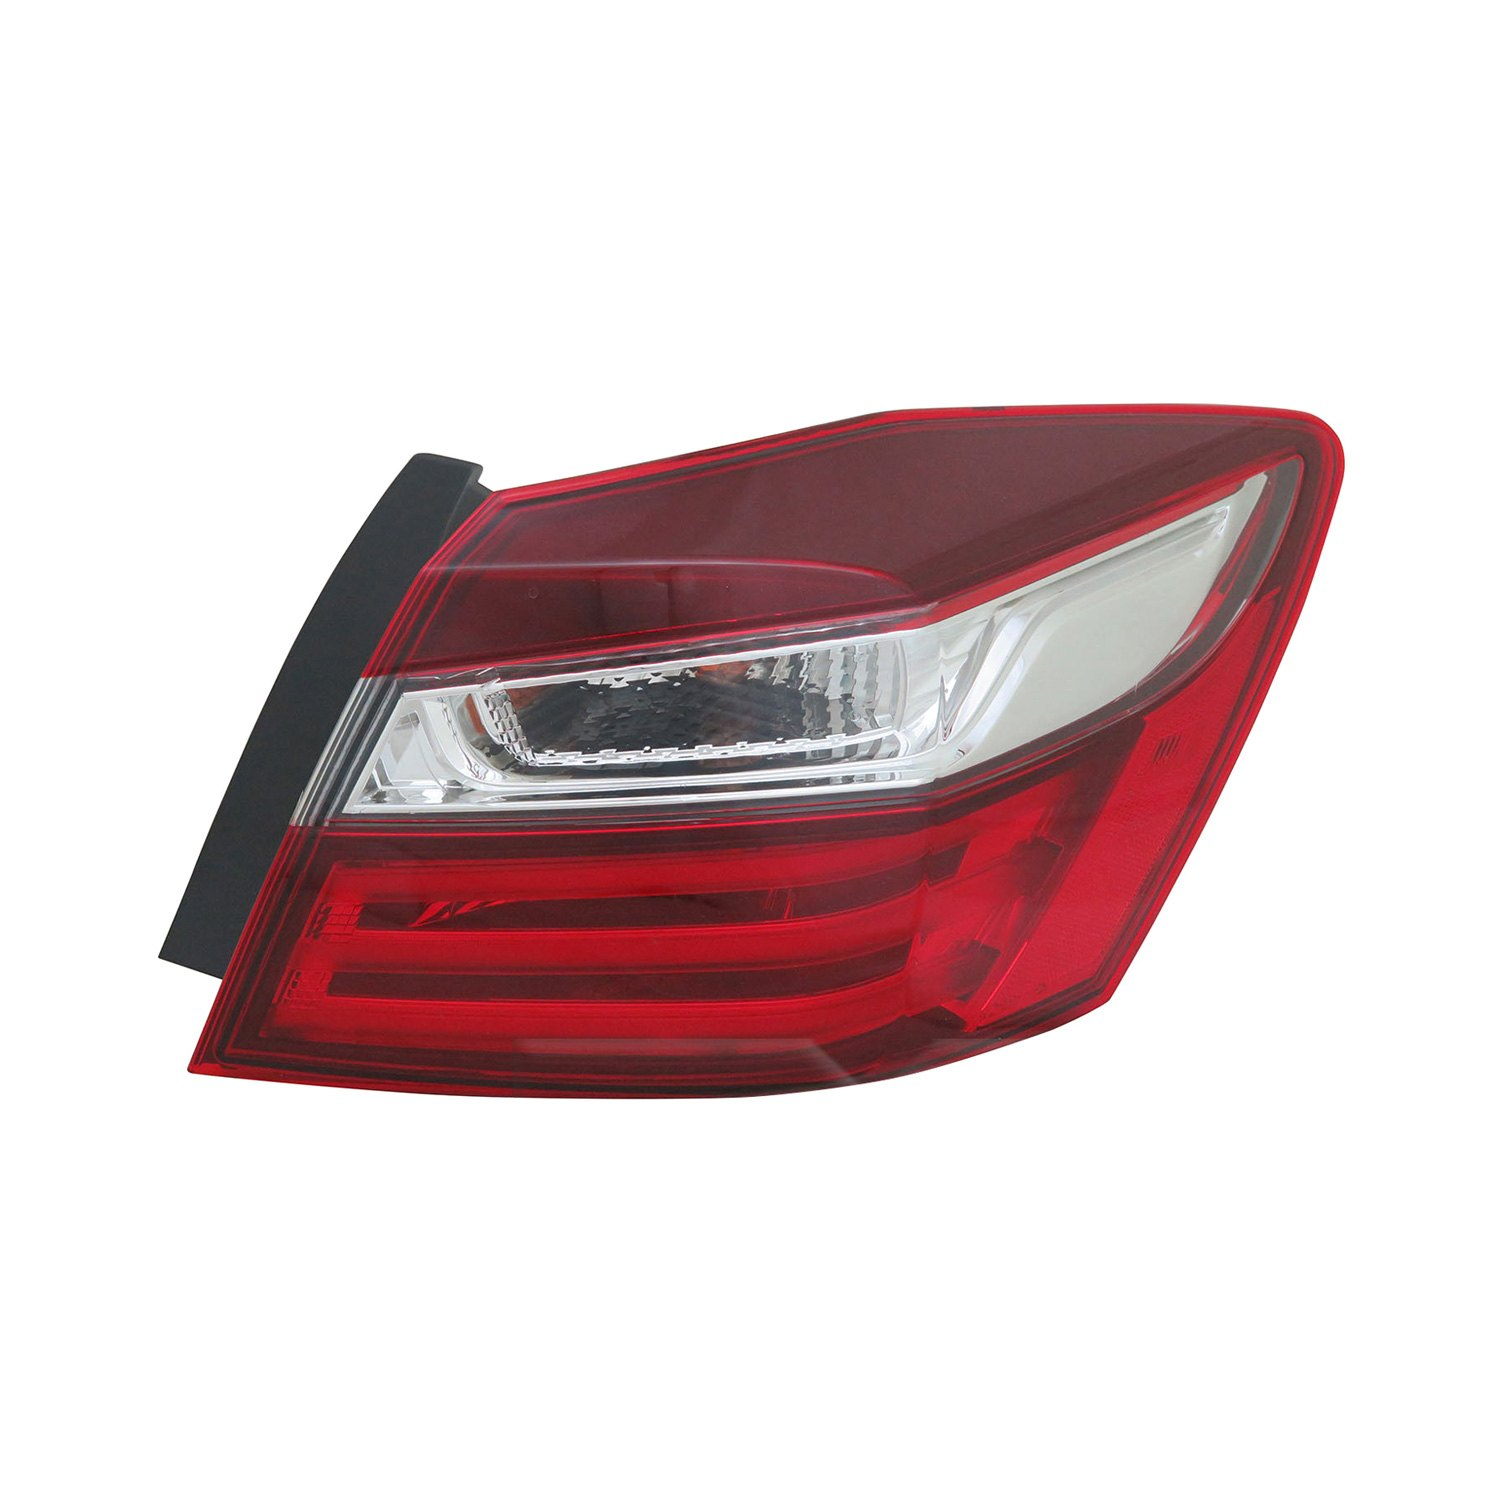 tyc honda accord sedan 2016 replacement tail light. Black Bedroom Furniture Sets. Home Design Ideas